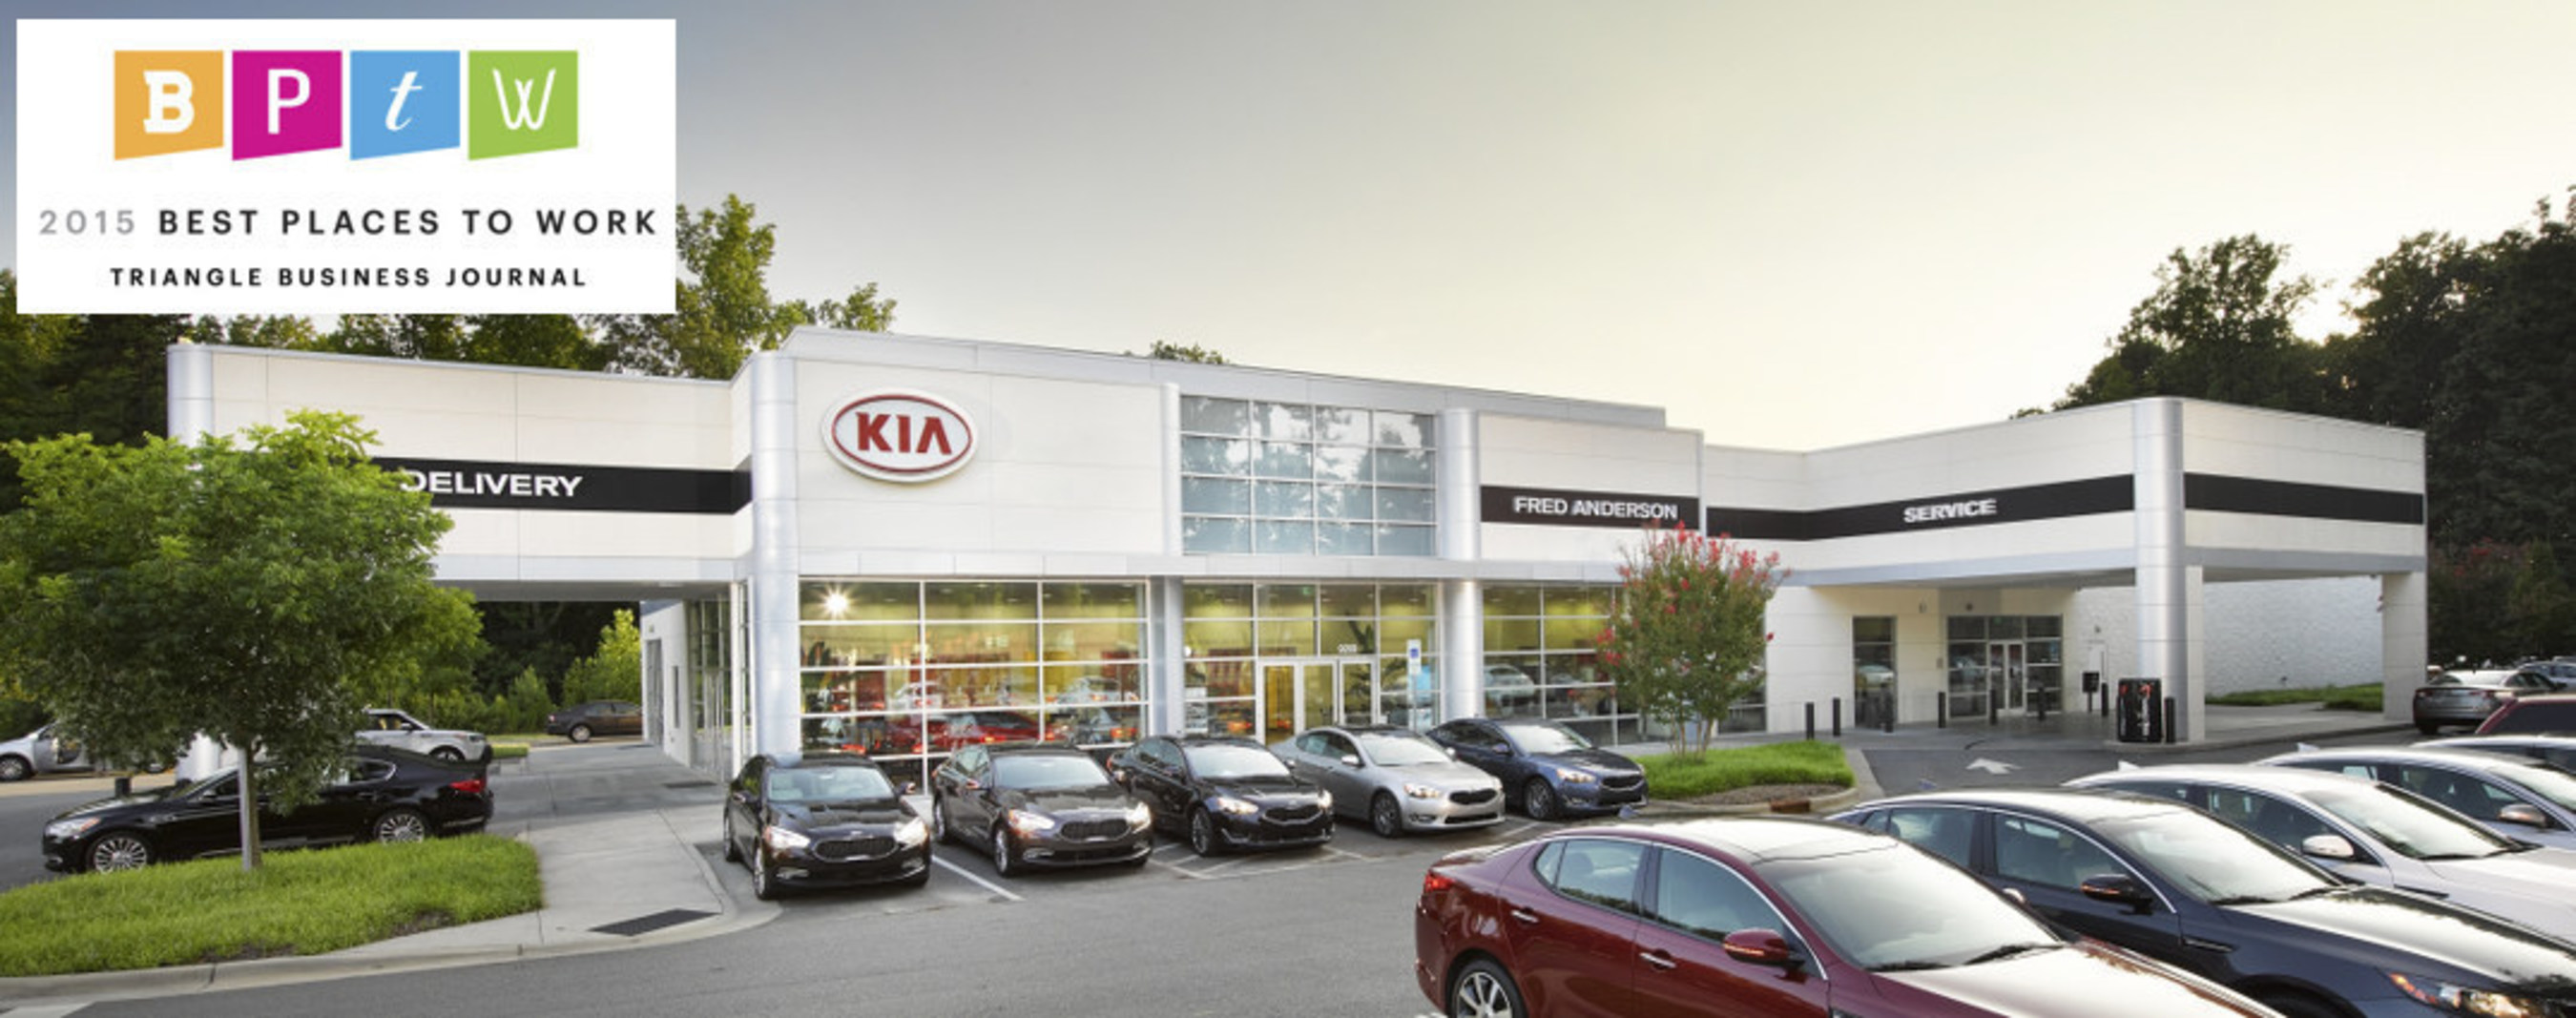 Fred Anderson Kia and the Anderson Automotive Group recognized as one of the Best Places to Work